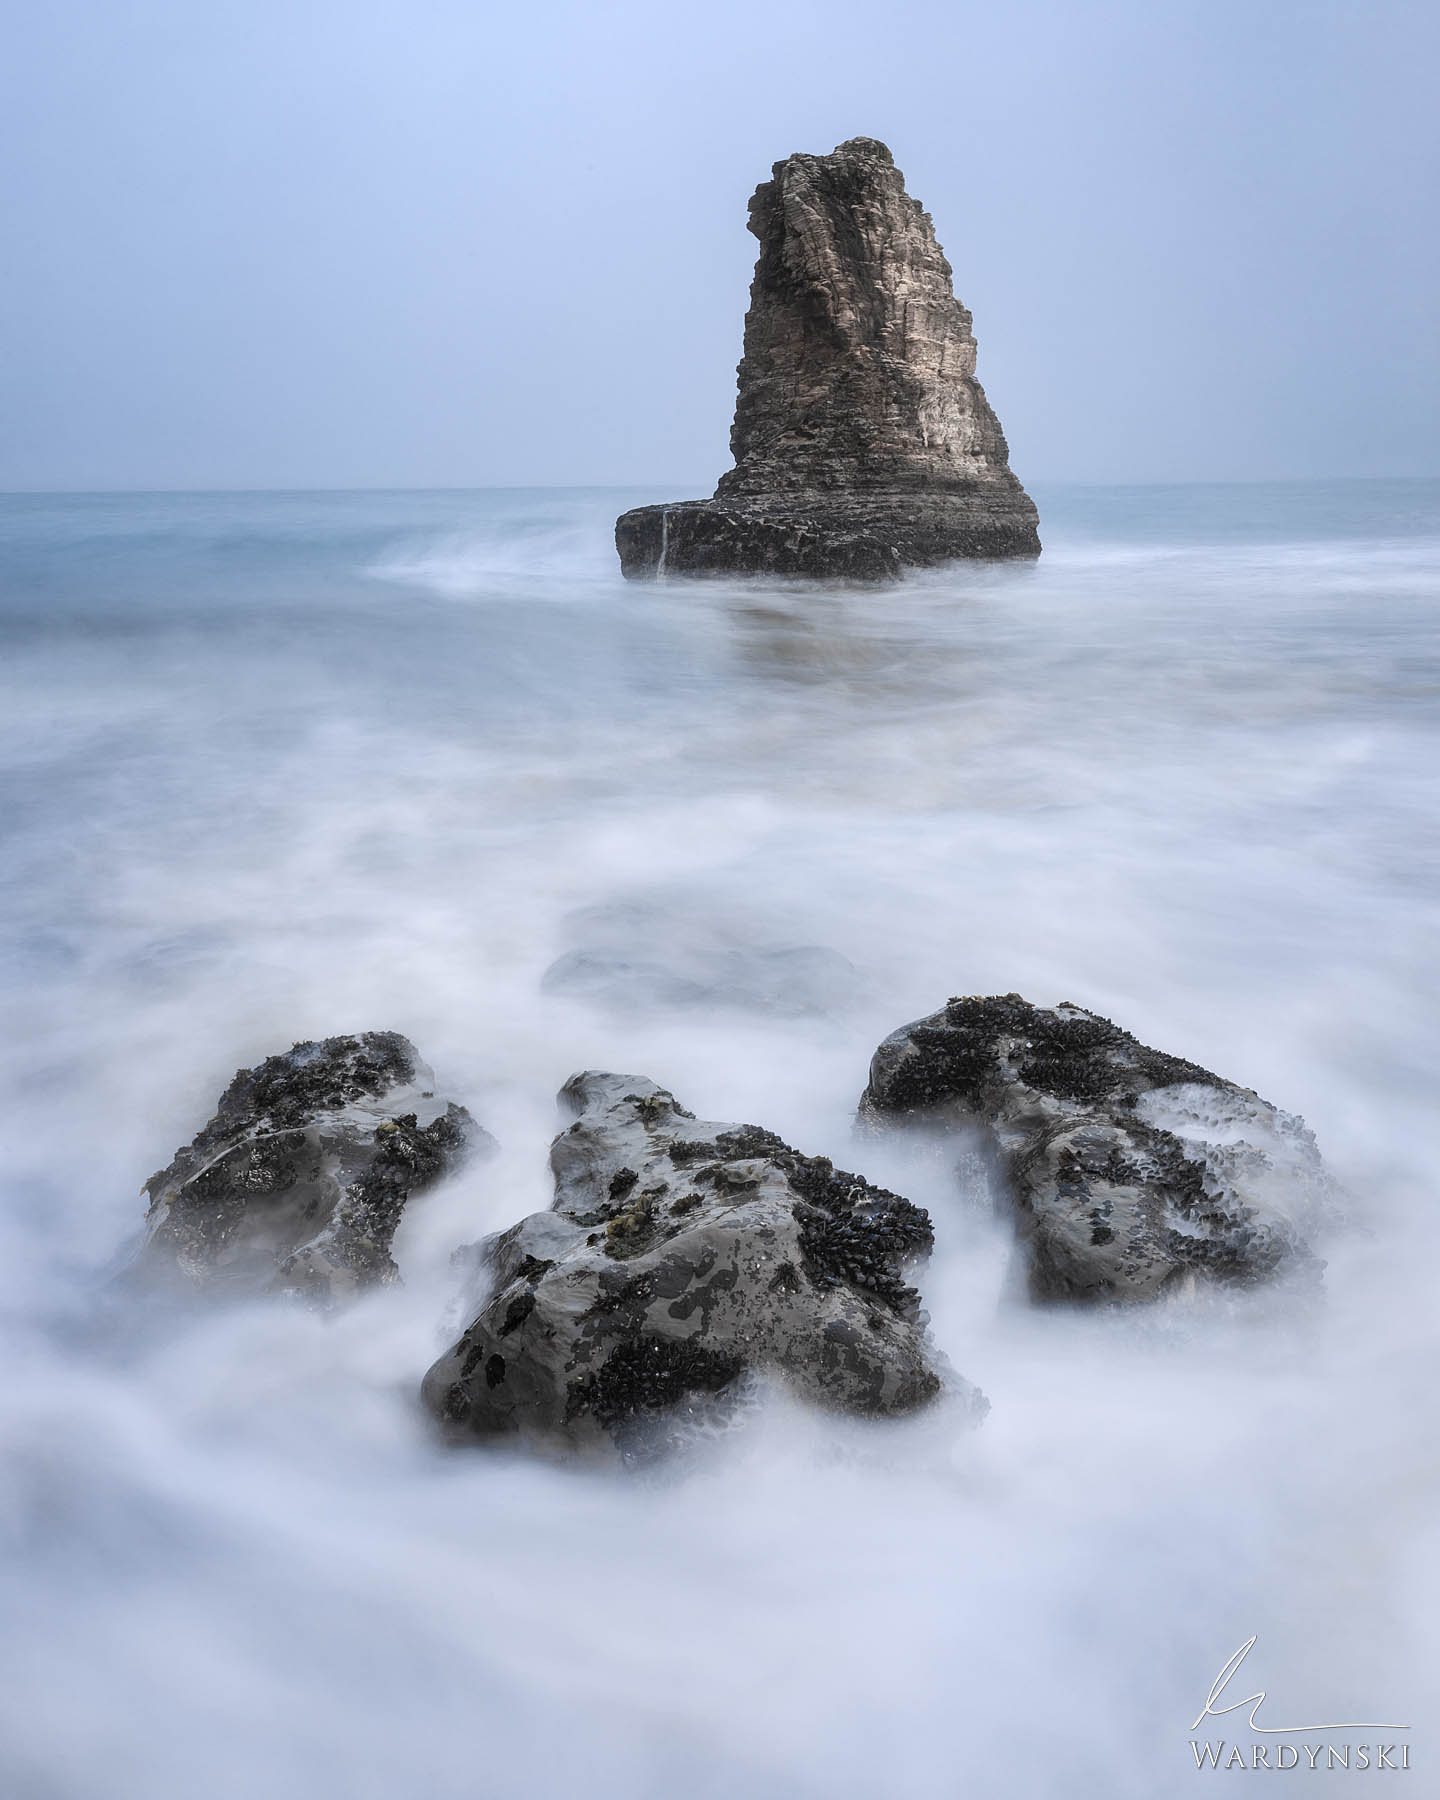 Fine Art Print | Limited Edition of 25  Fragmented rocks rise from the surf like pieces of a puzzle in Davenport California....